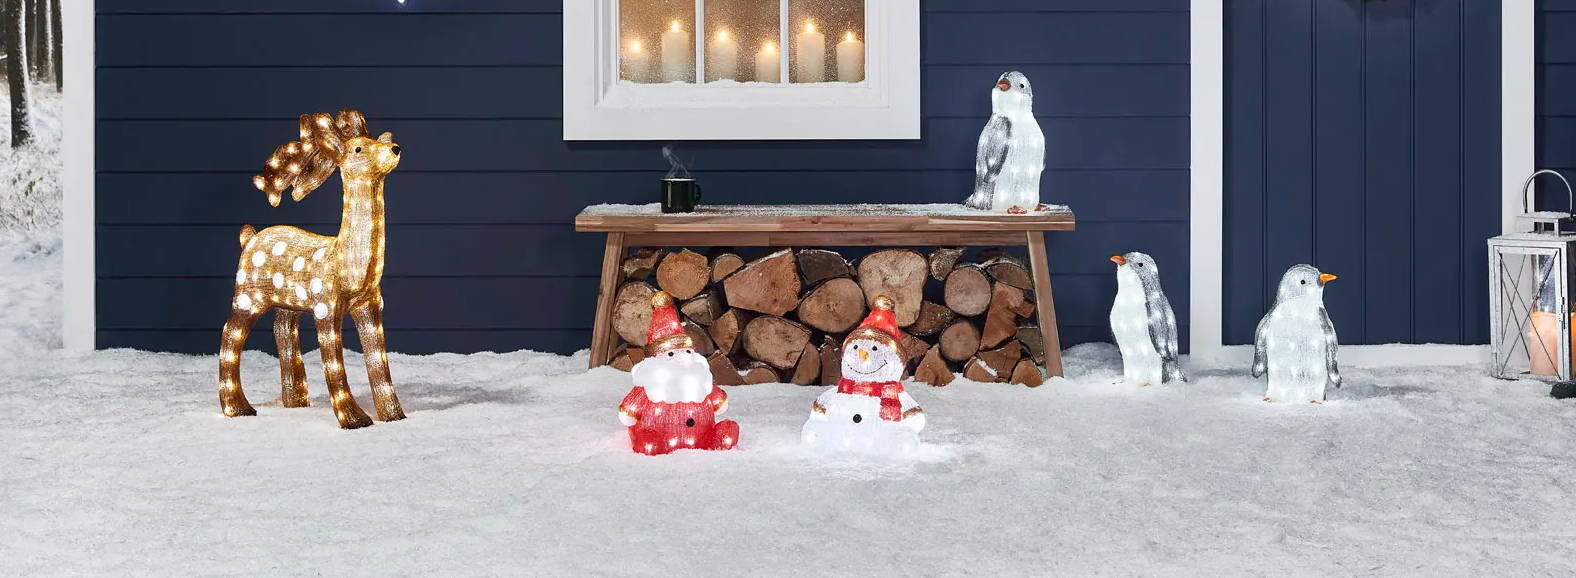 A display of Christmas figures set up outside a blue cabin